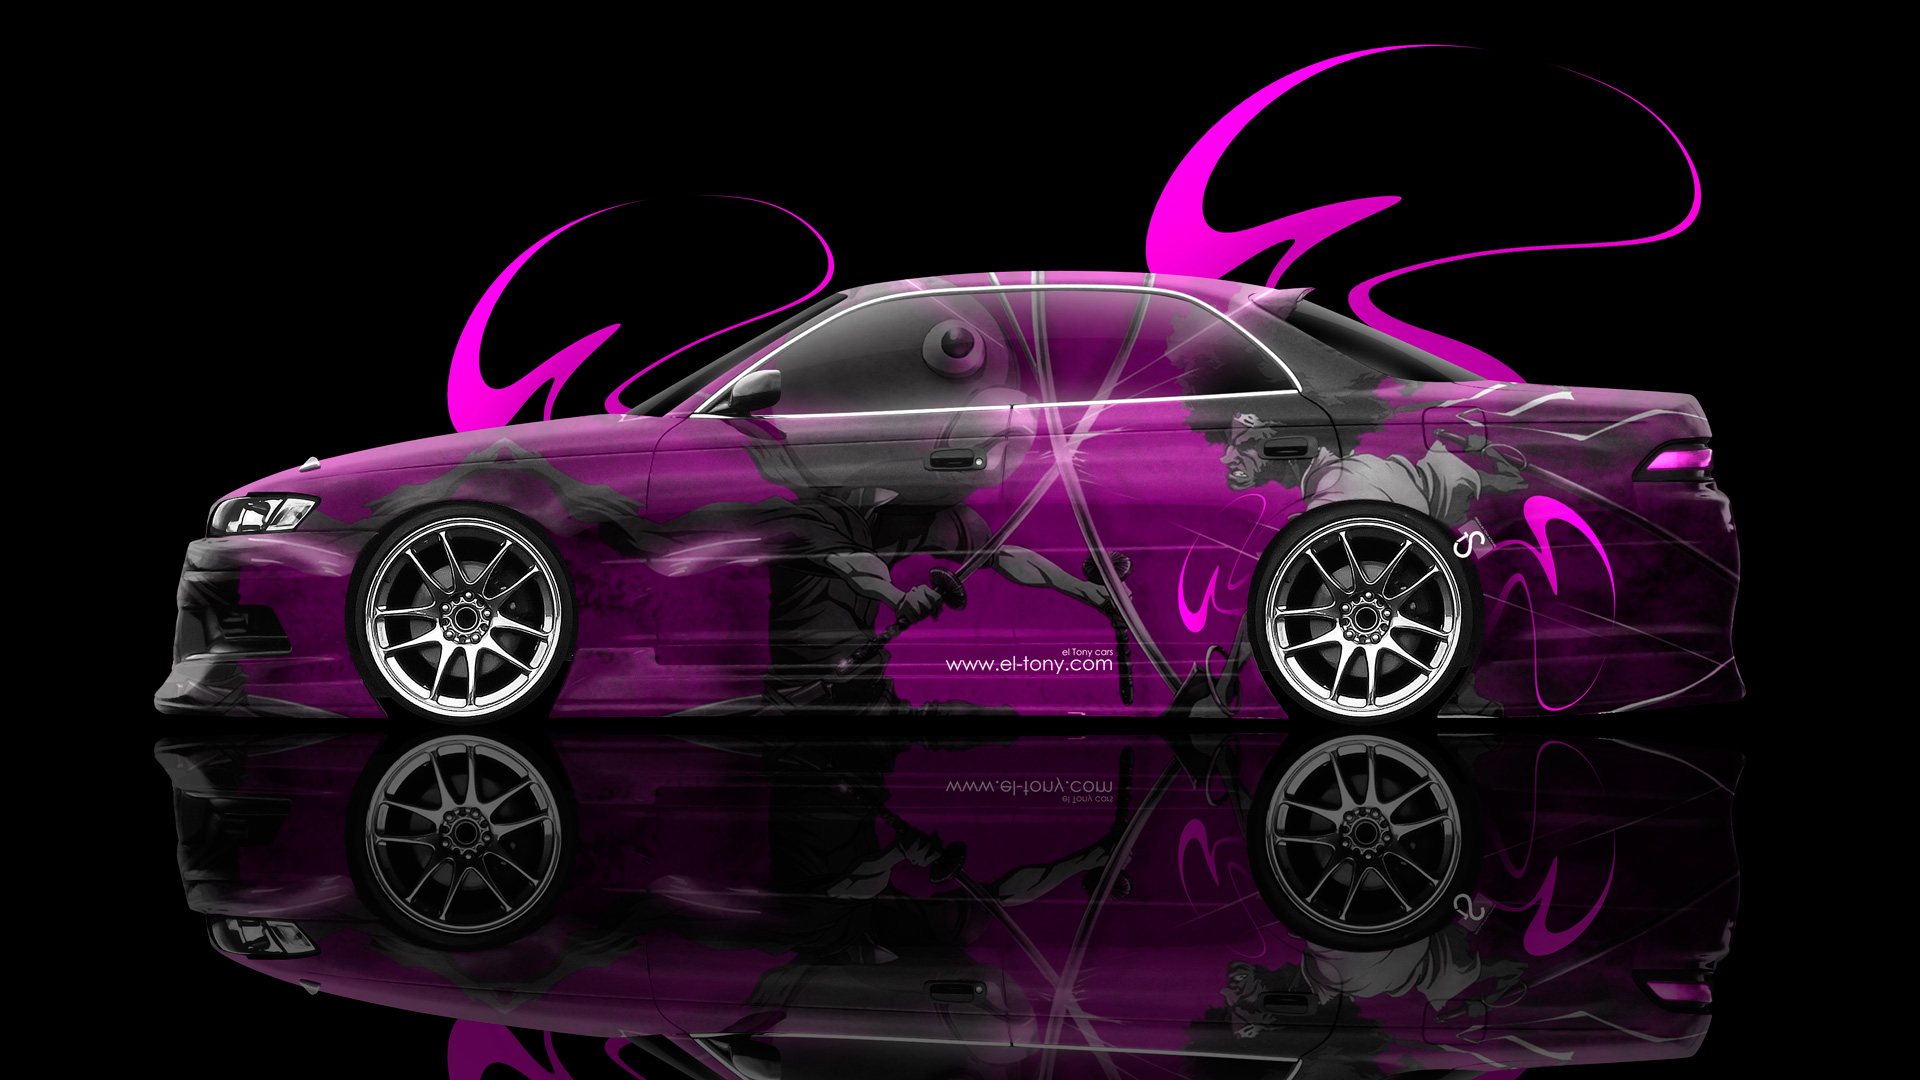 Genial Toyota Mark2 JZX90 JDM Anime Aerography Samurai Car 2014